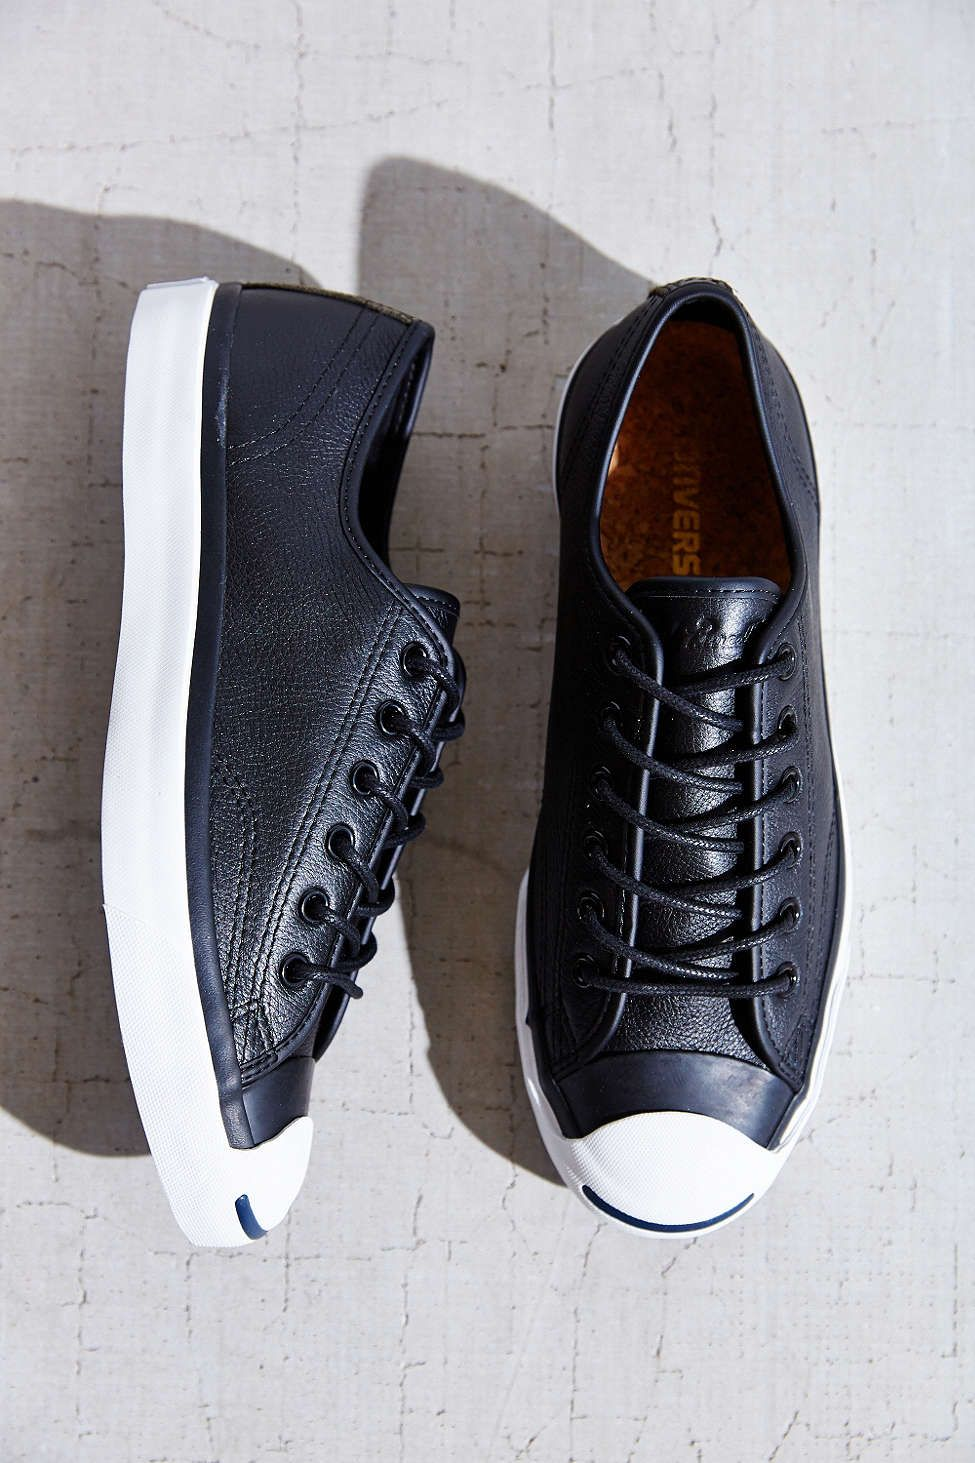 d2bcd157570da7 Converse Jack Purcell Tumbled Leather Low-Top Sneaker - Urban Outfitters